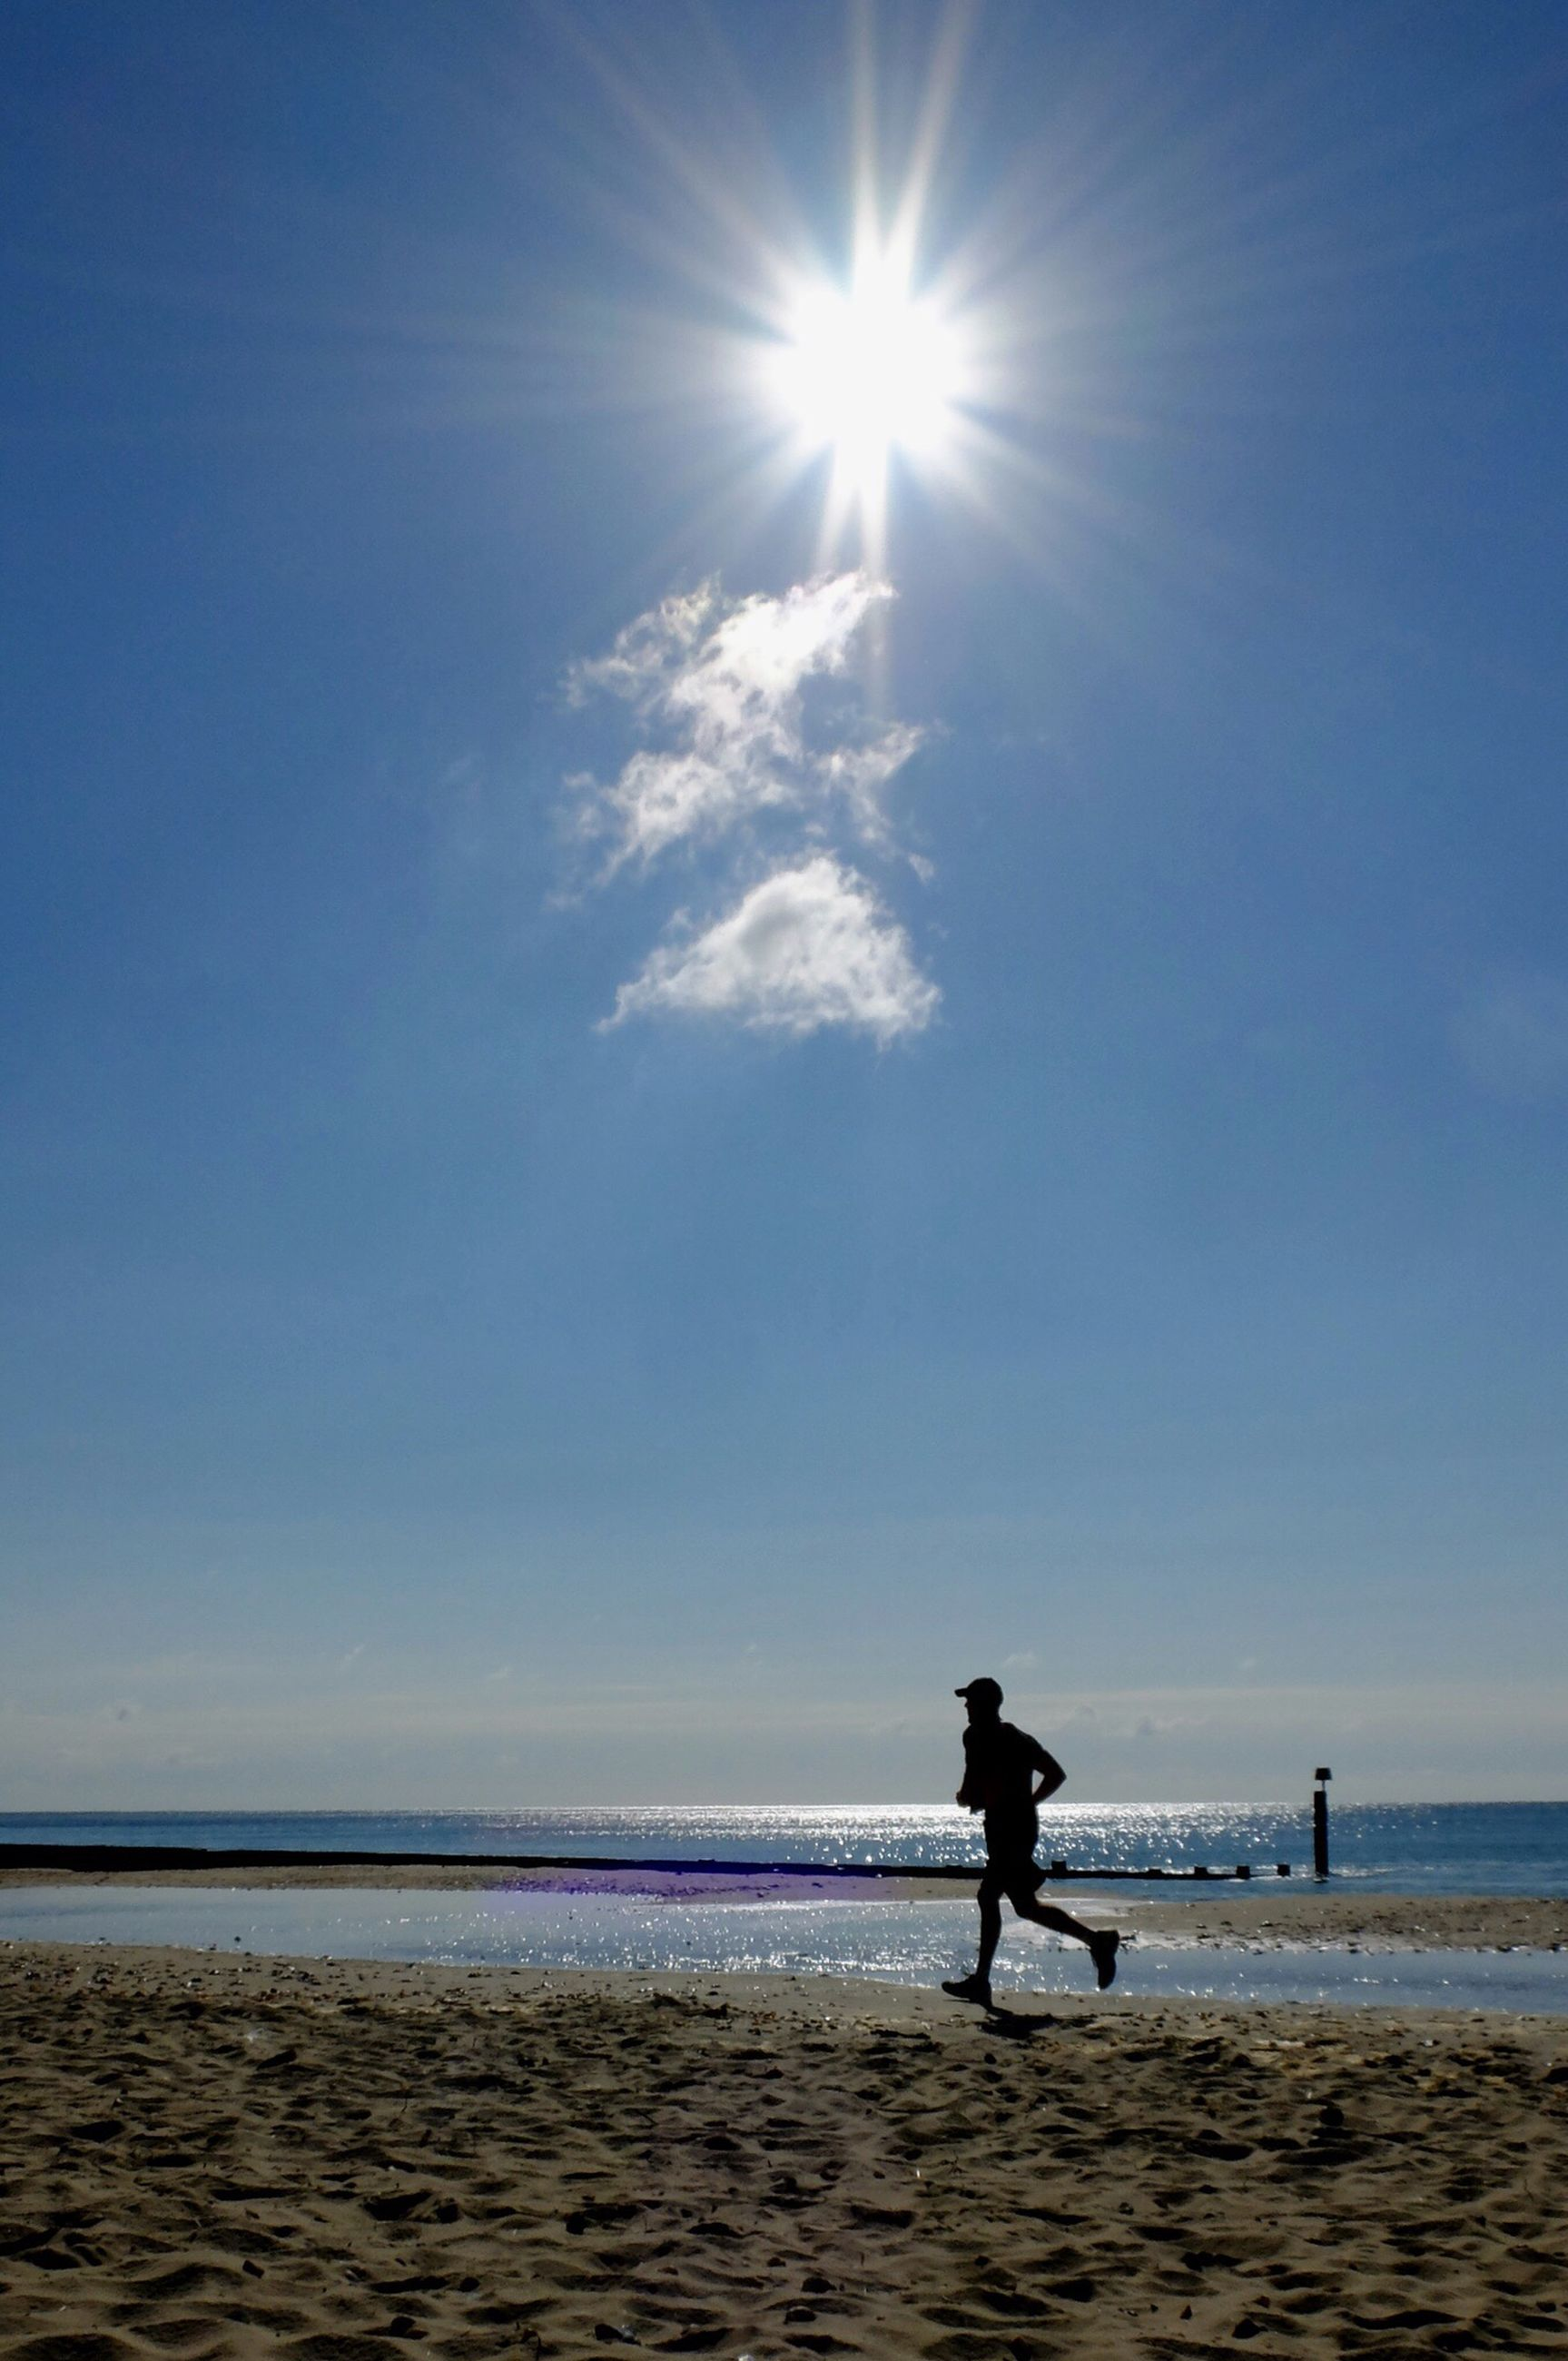 sea, horizon over water, water, beach, silhouette, sun, tranquil scene, tranquility, scenics, sky, sunlight, shore, beauty in nature, leisure activity, full length, lifestyles, men, sunbeam